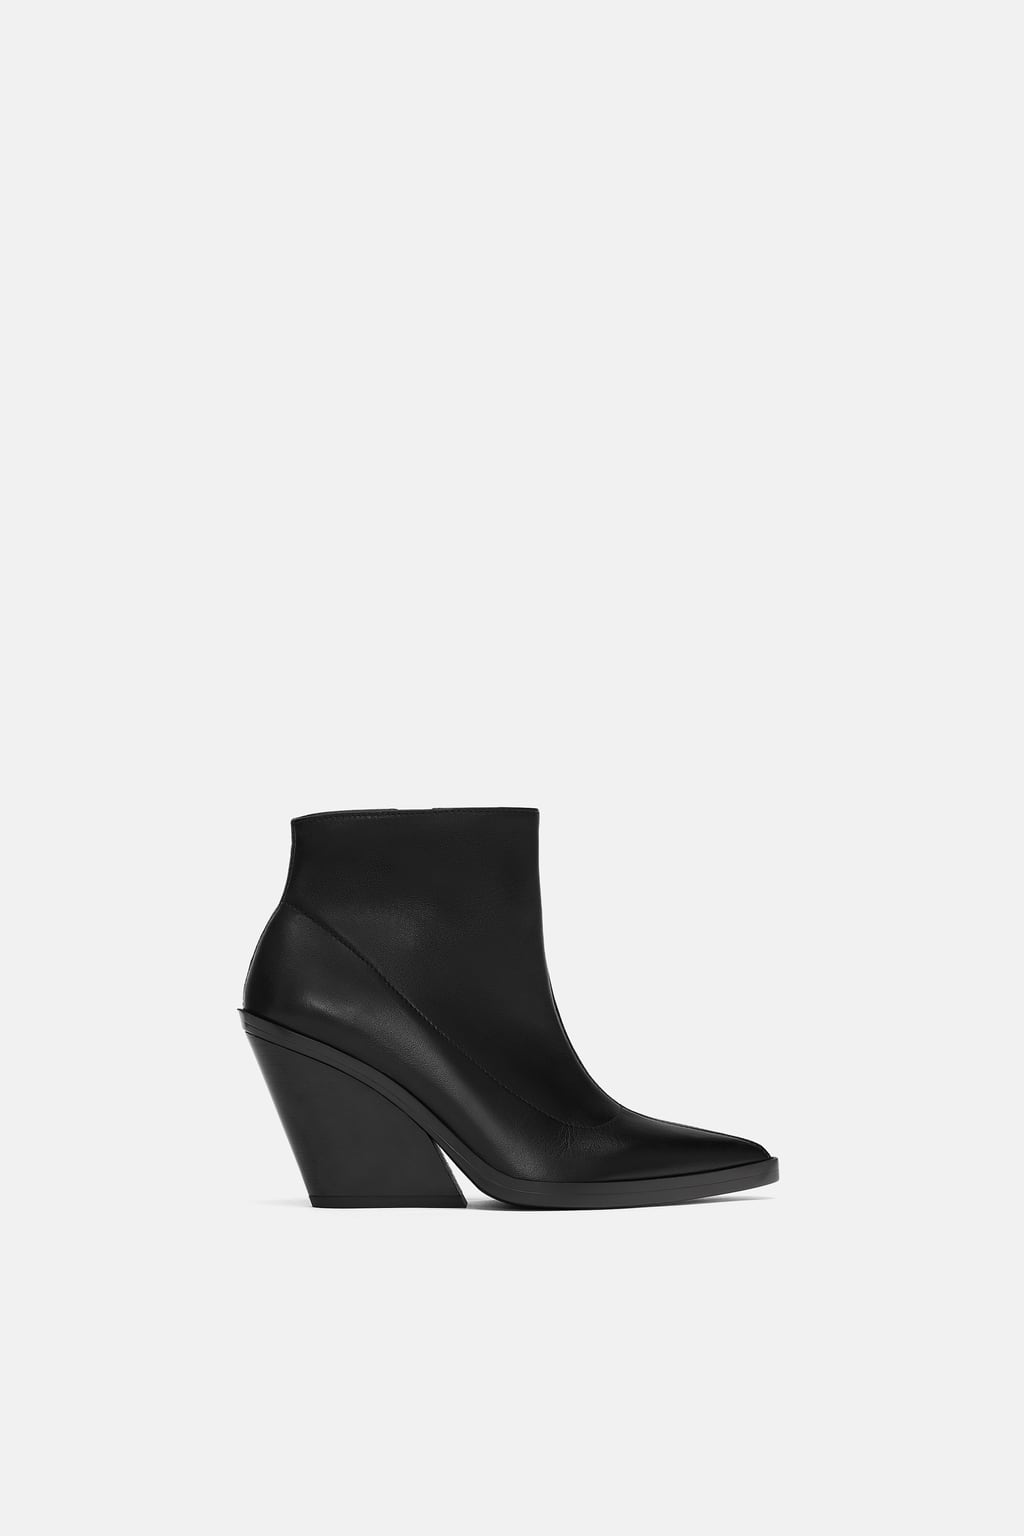 https://www.zara.com/ca/en/leather-wedge-ankle-boot-p17154301.html?v1=7354066&v2=1080528